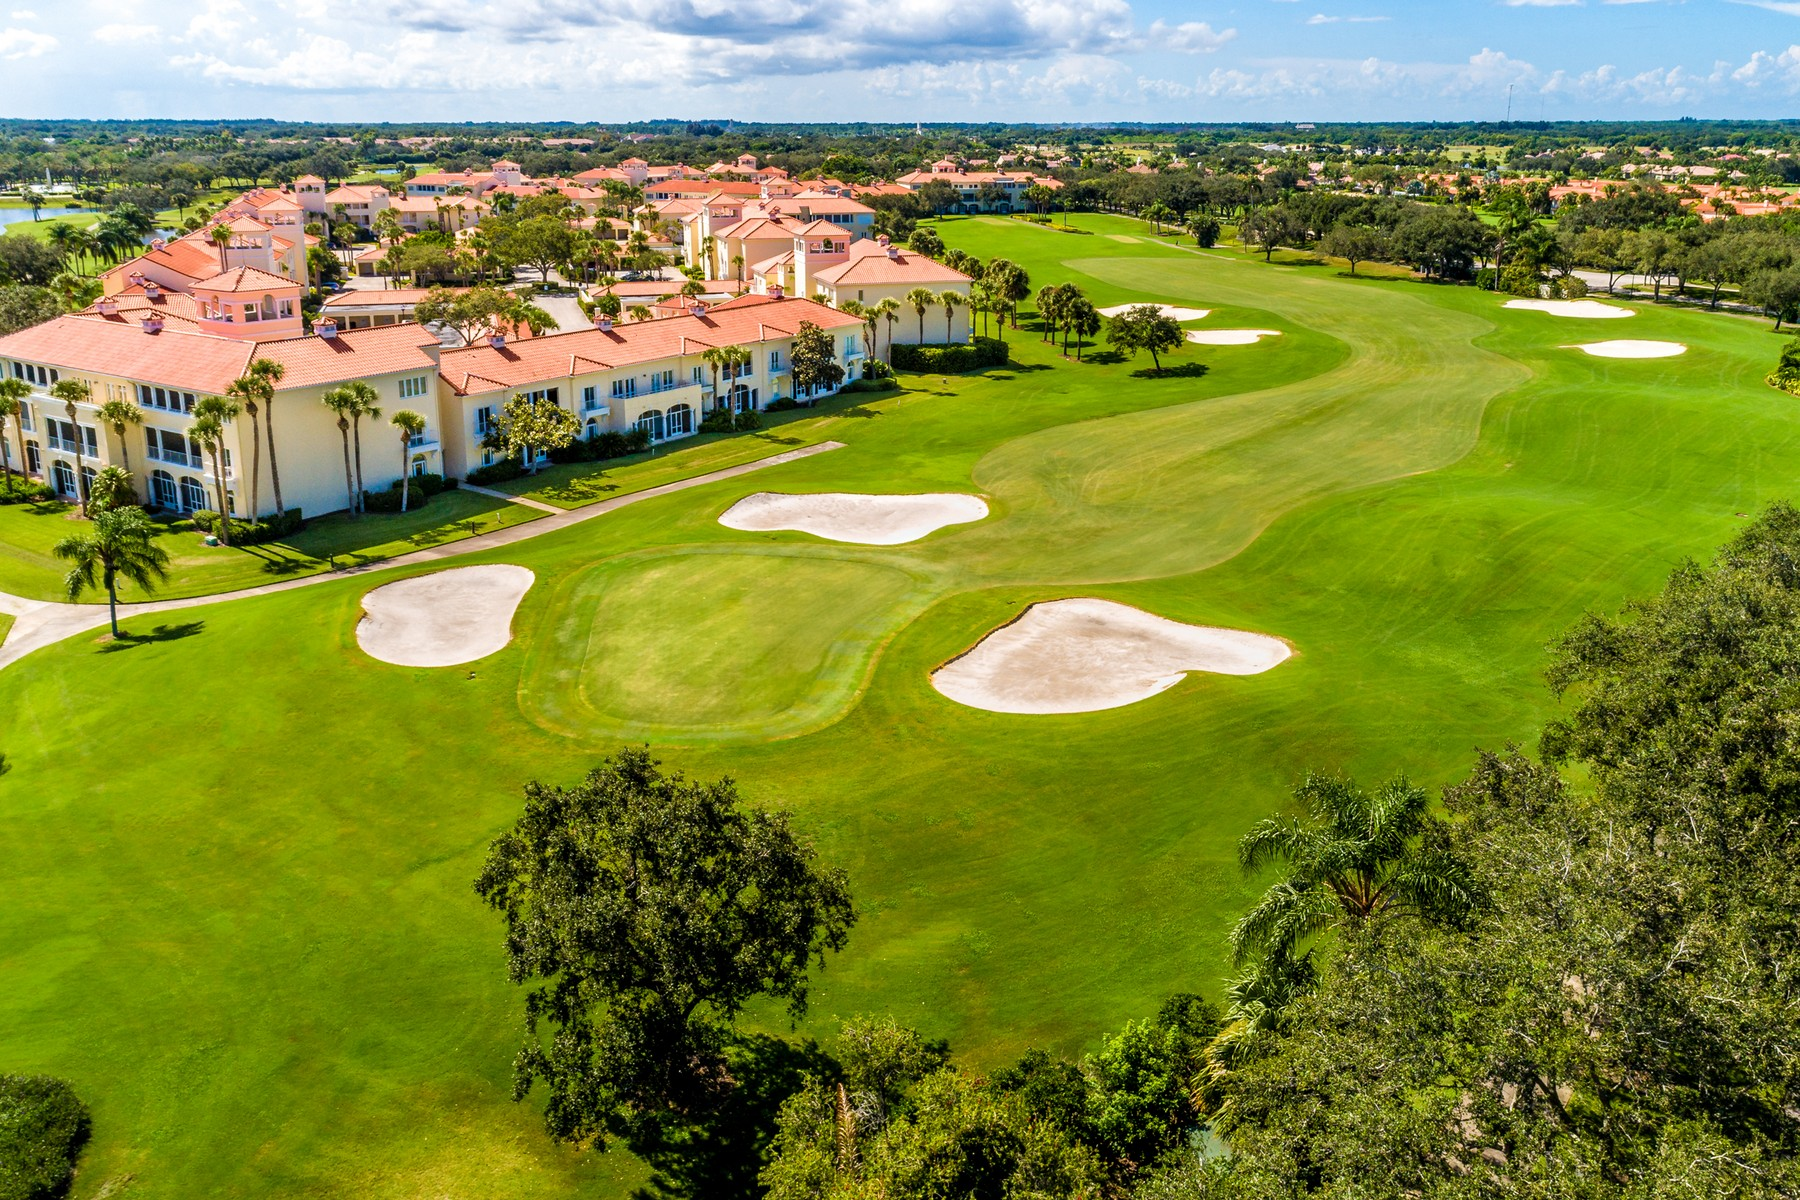 Additional photo for property listing at Resort Living in Grand Harbor 2368 Grand Harbor Reserve Square Vero Beach, Florida 32967 United States